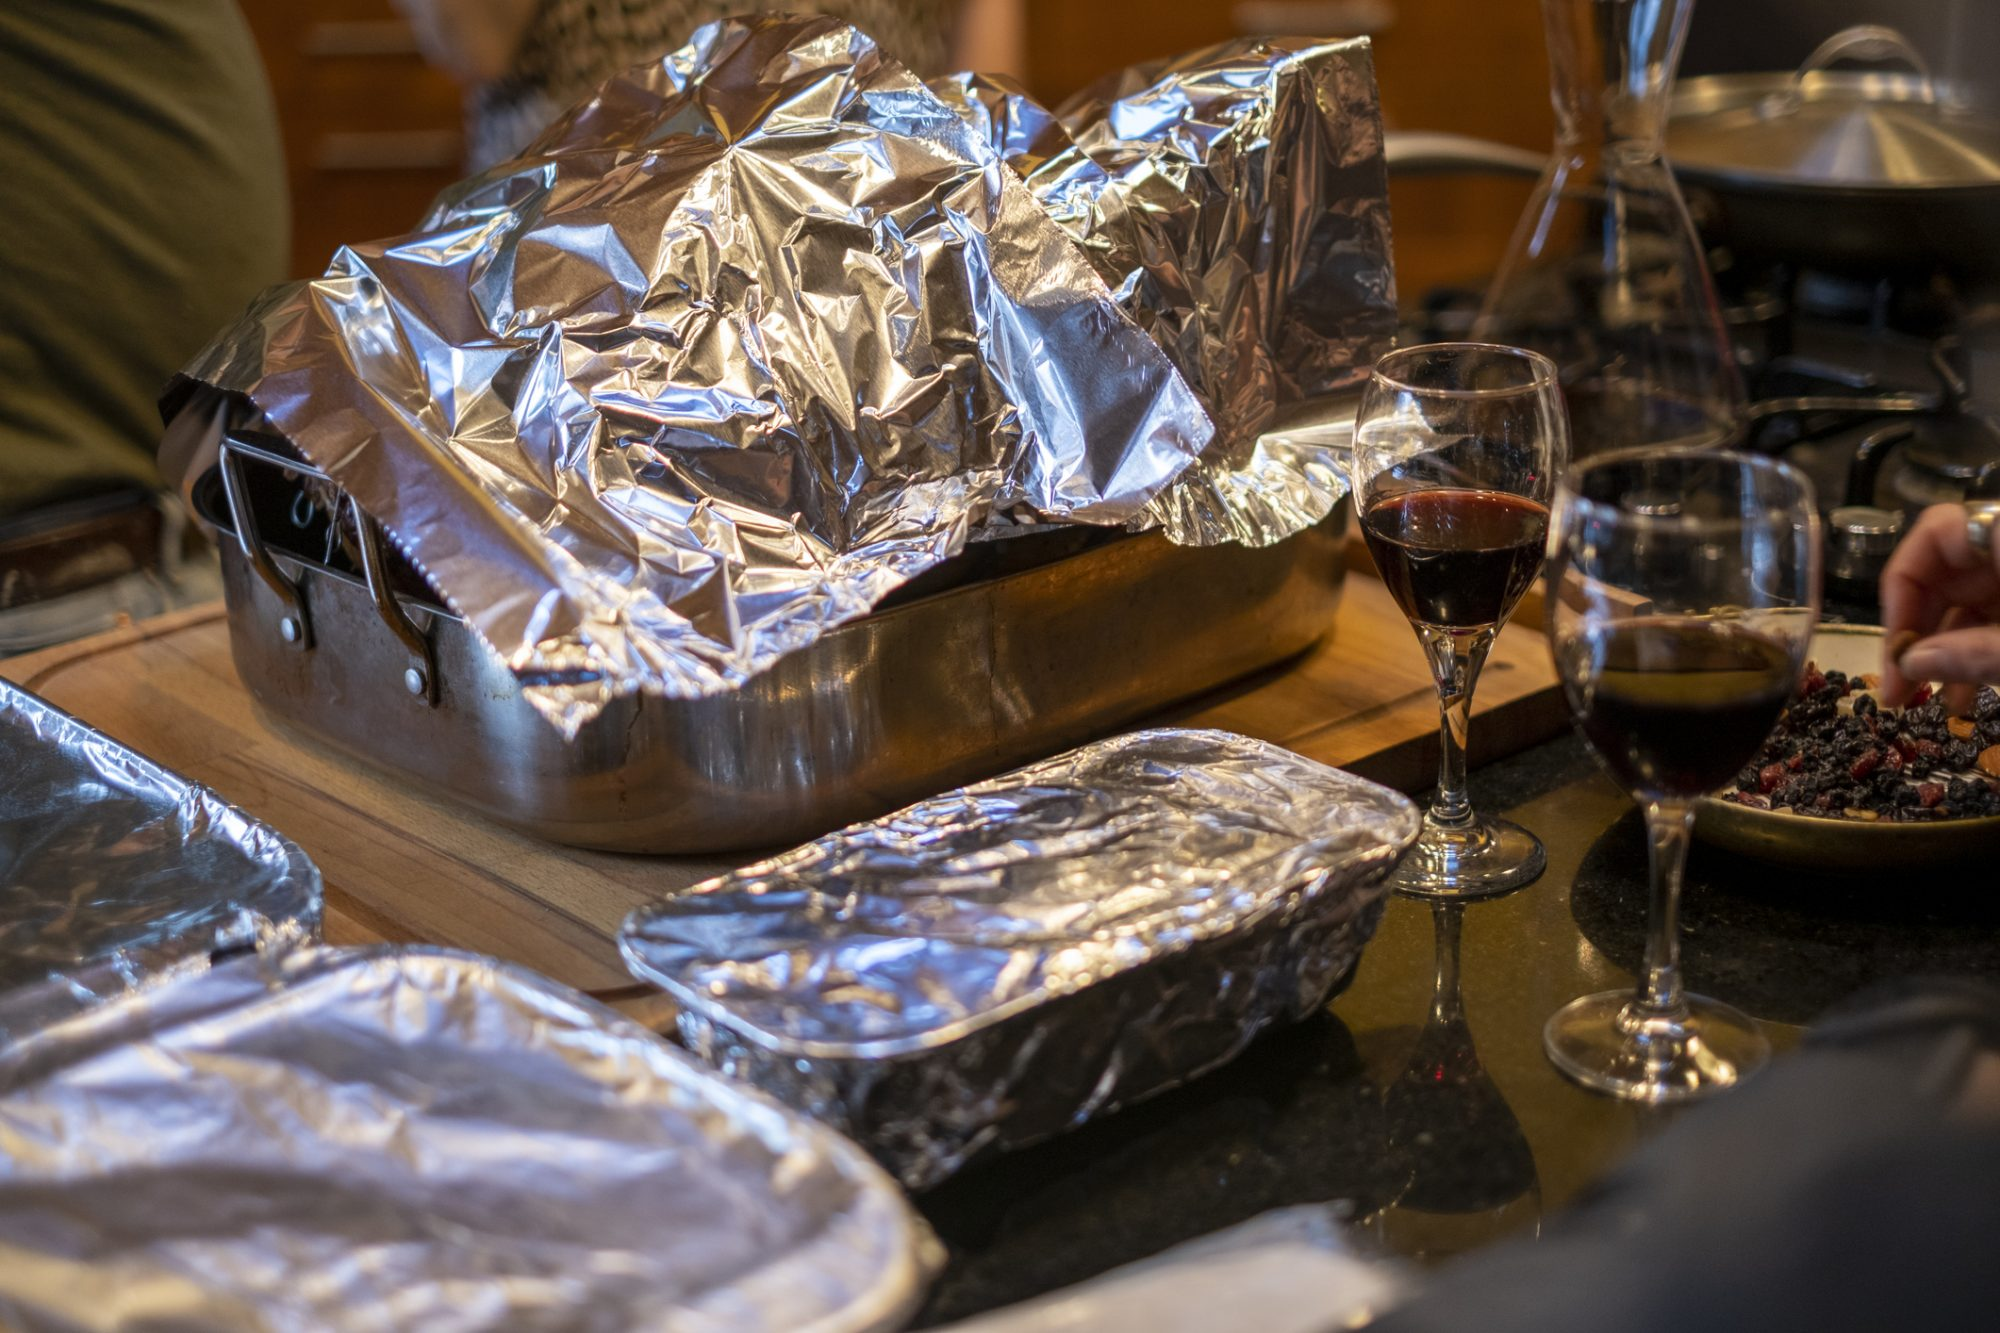 Food dishes on table covered in tin foil